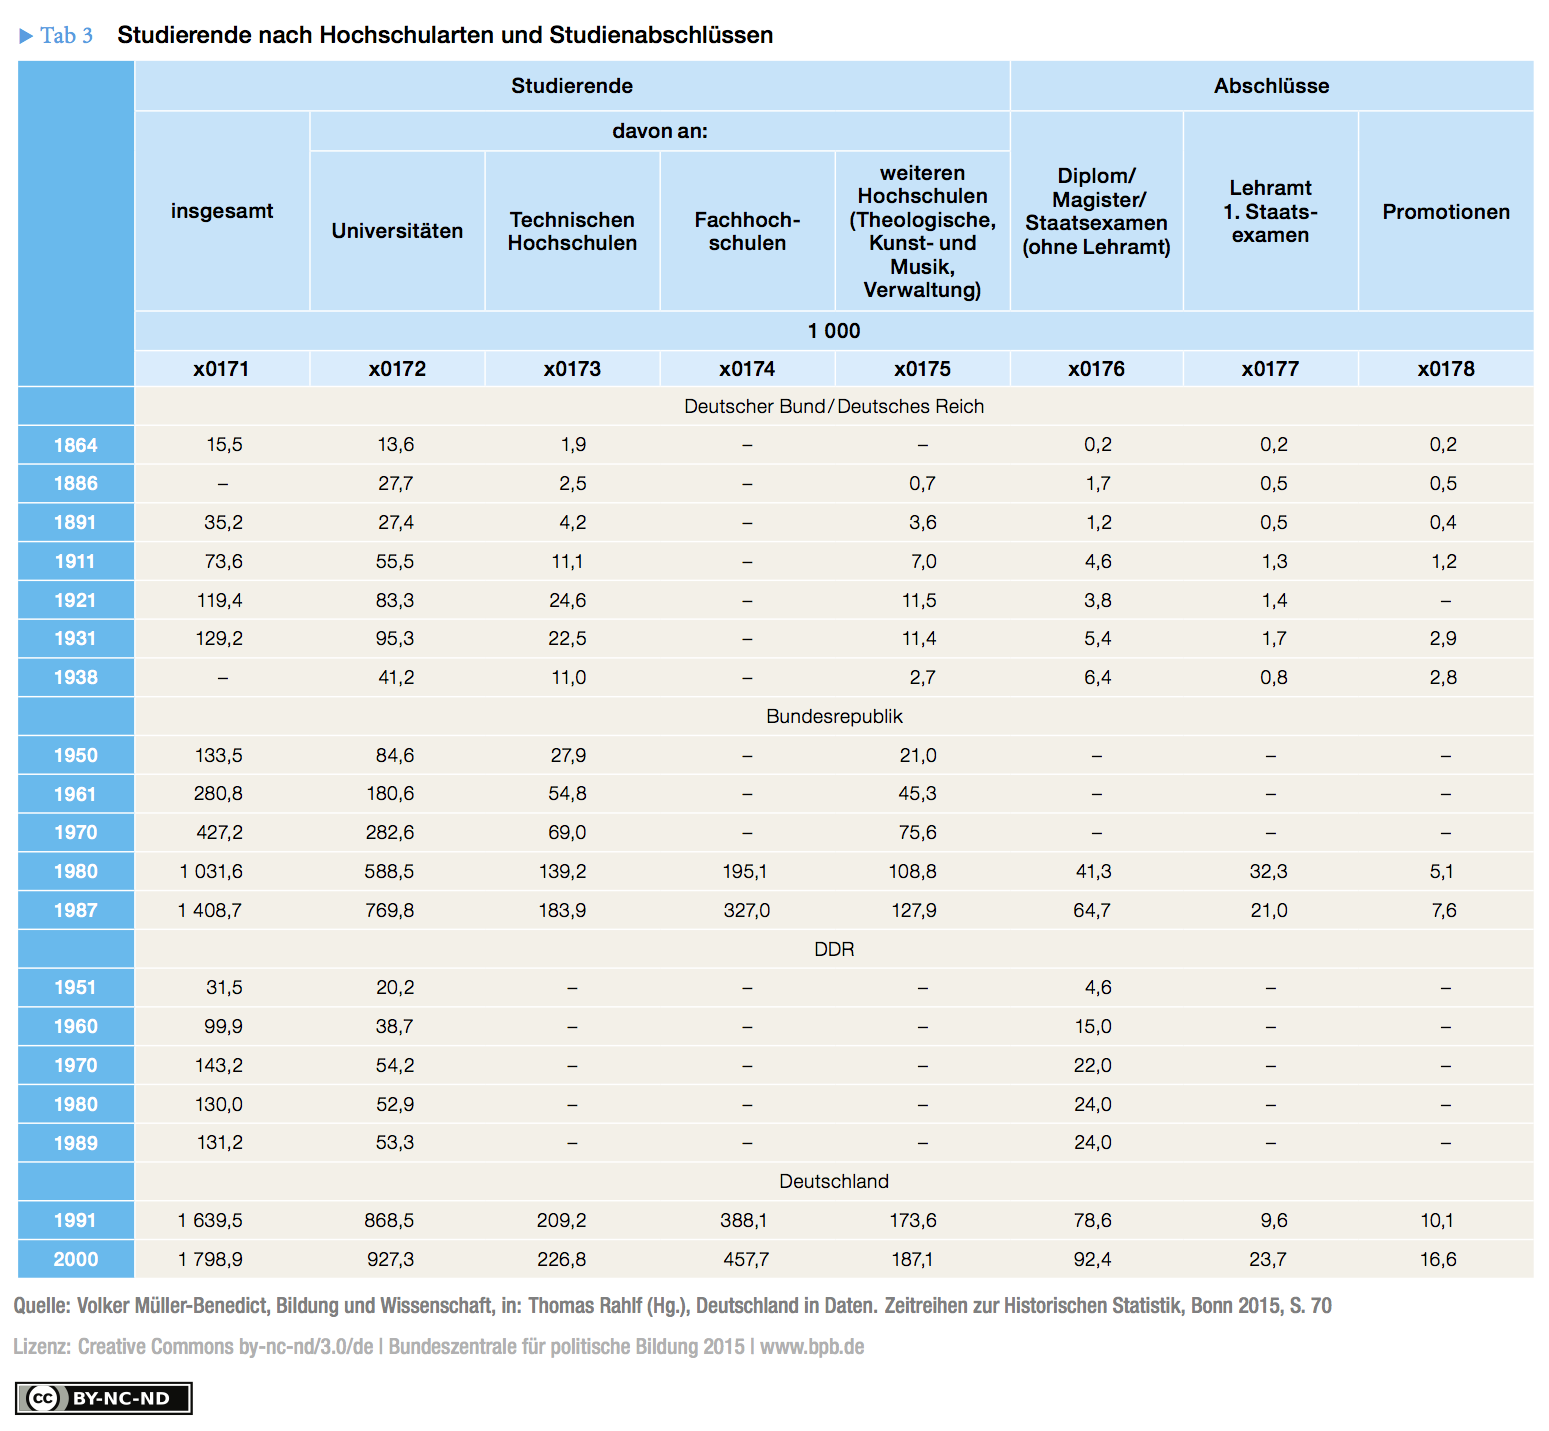 Table 3: Students by type of university and degree